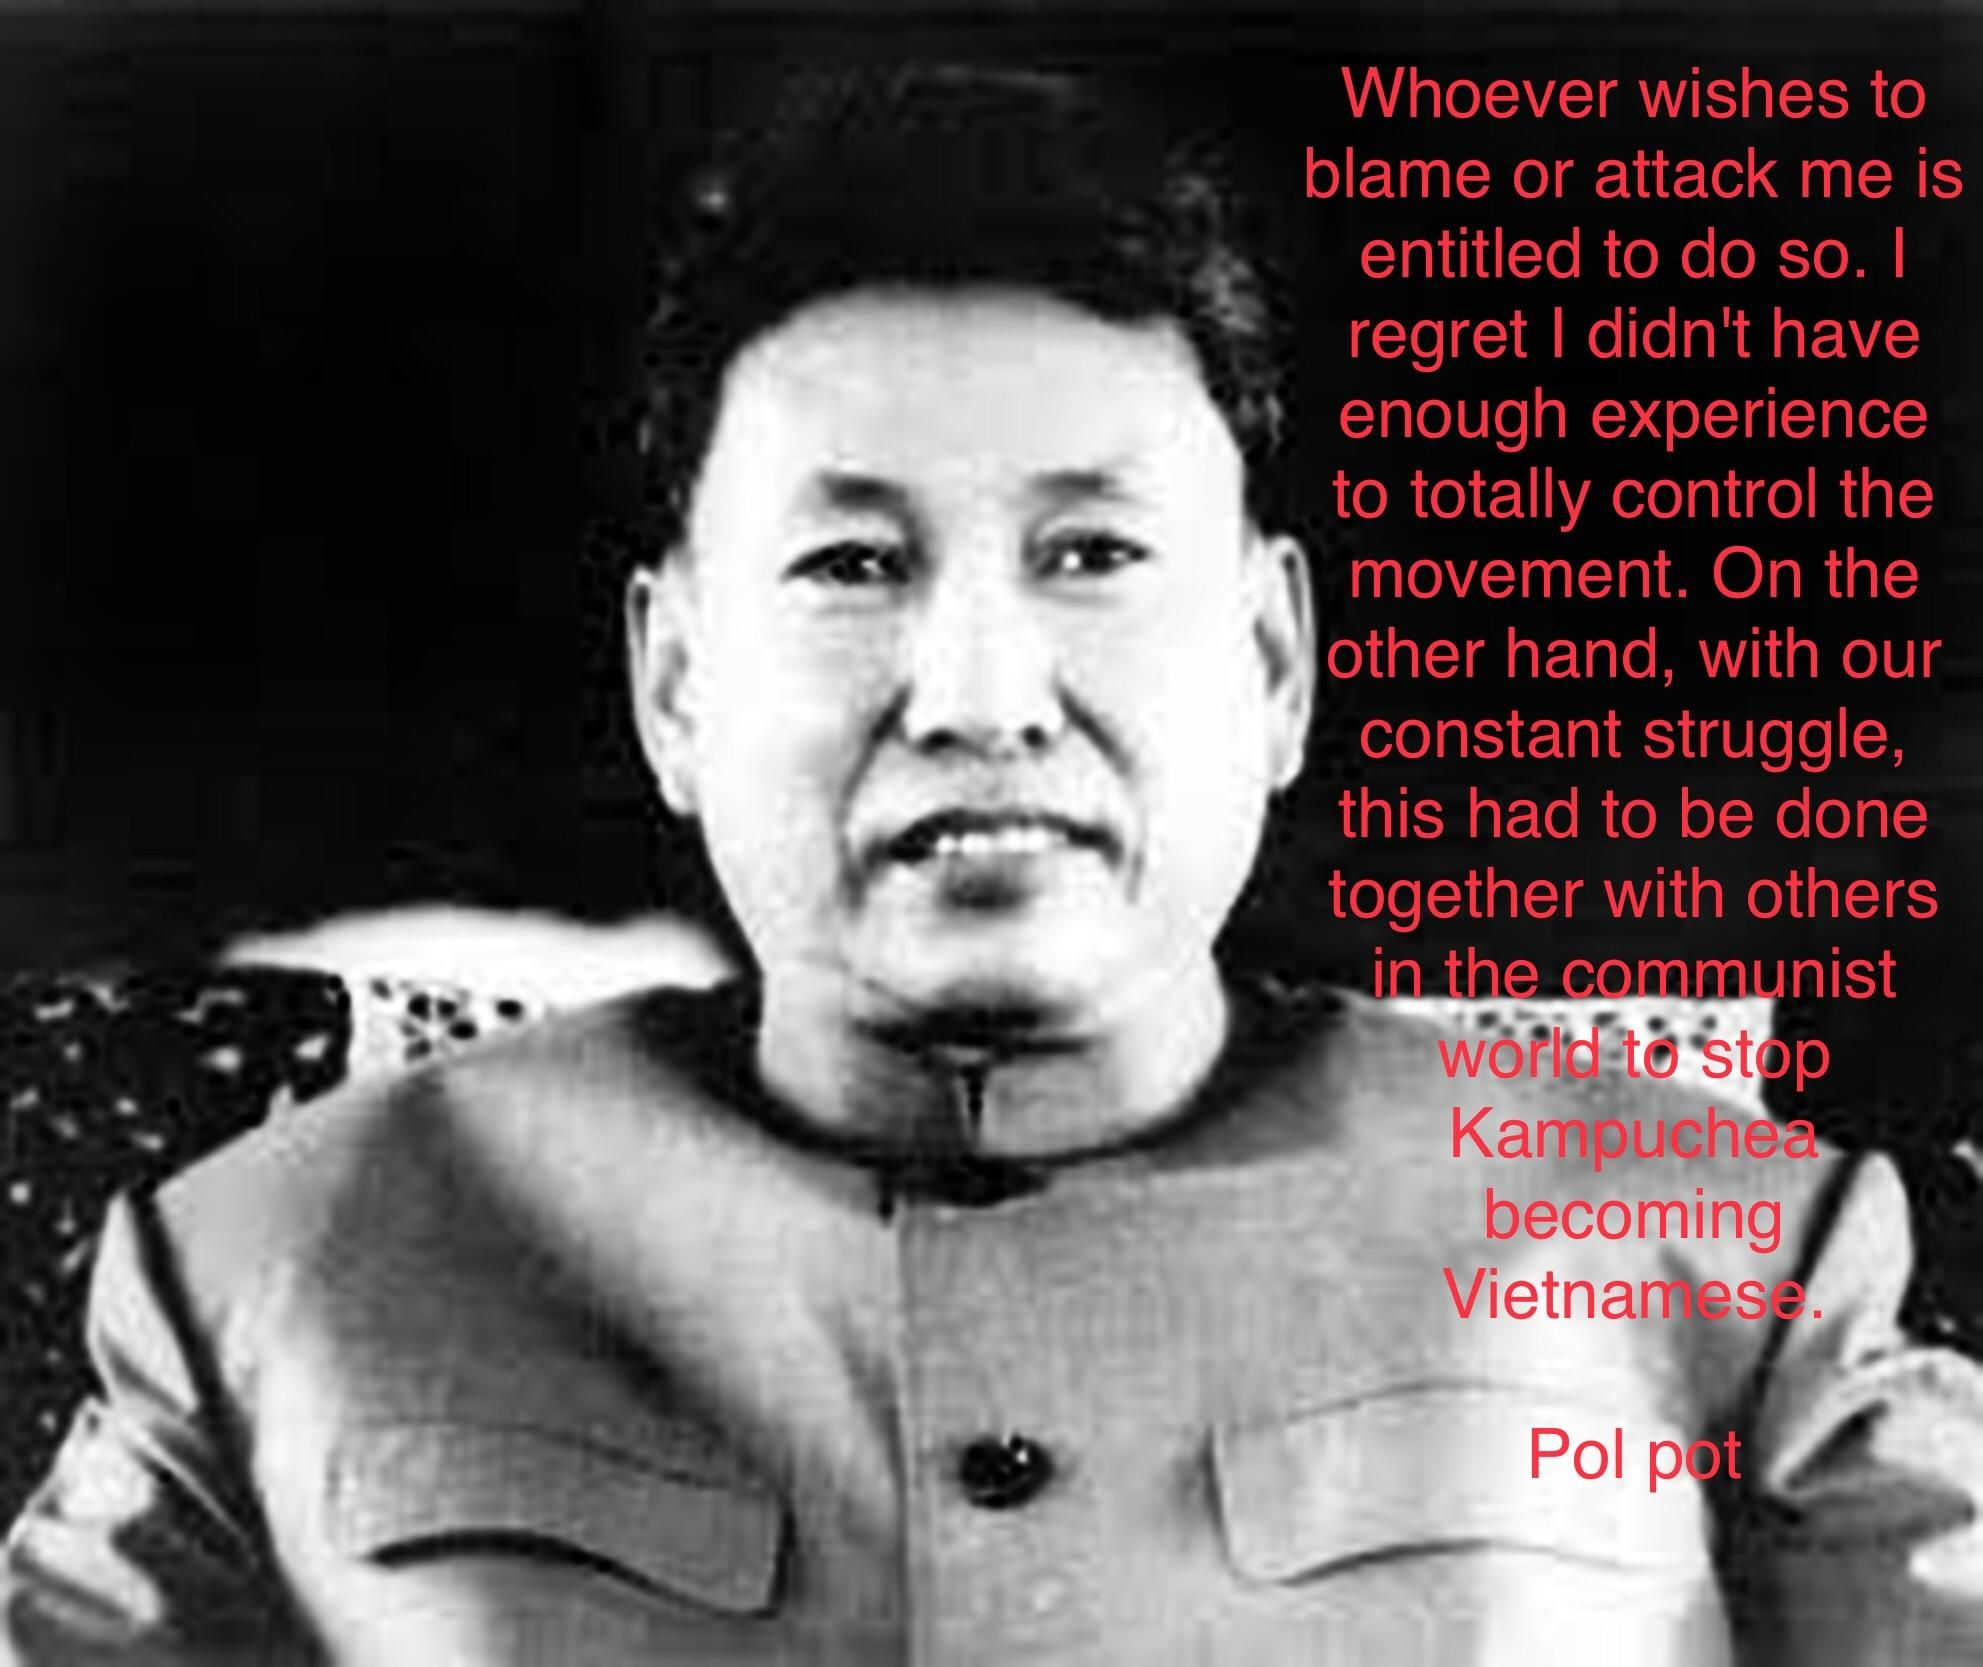 Pol Pot Quotes Inspiration Whoever Wishes To Blame Or Attack Me Is Entitled To Do Sopol .